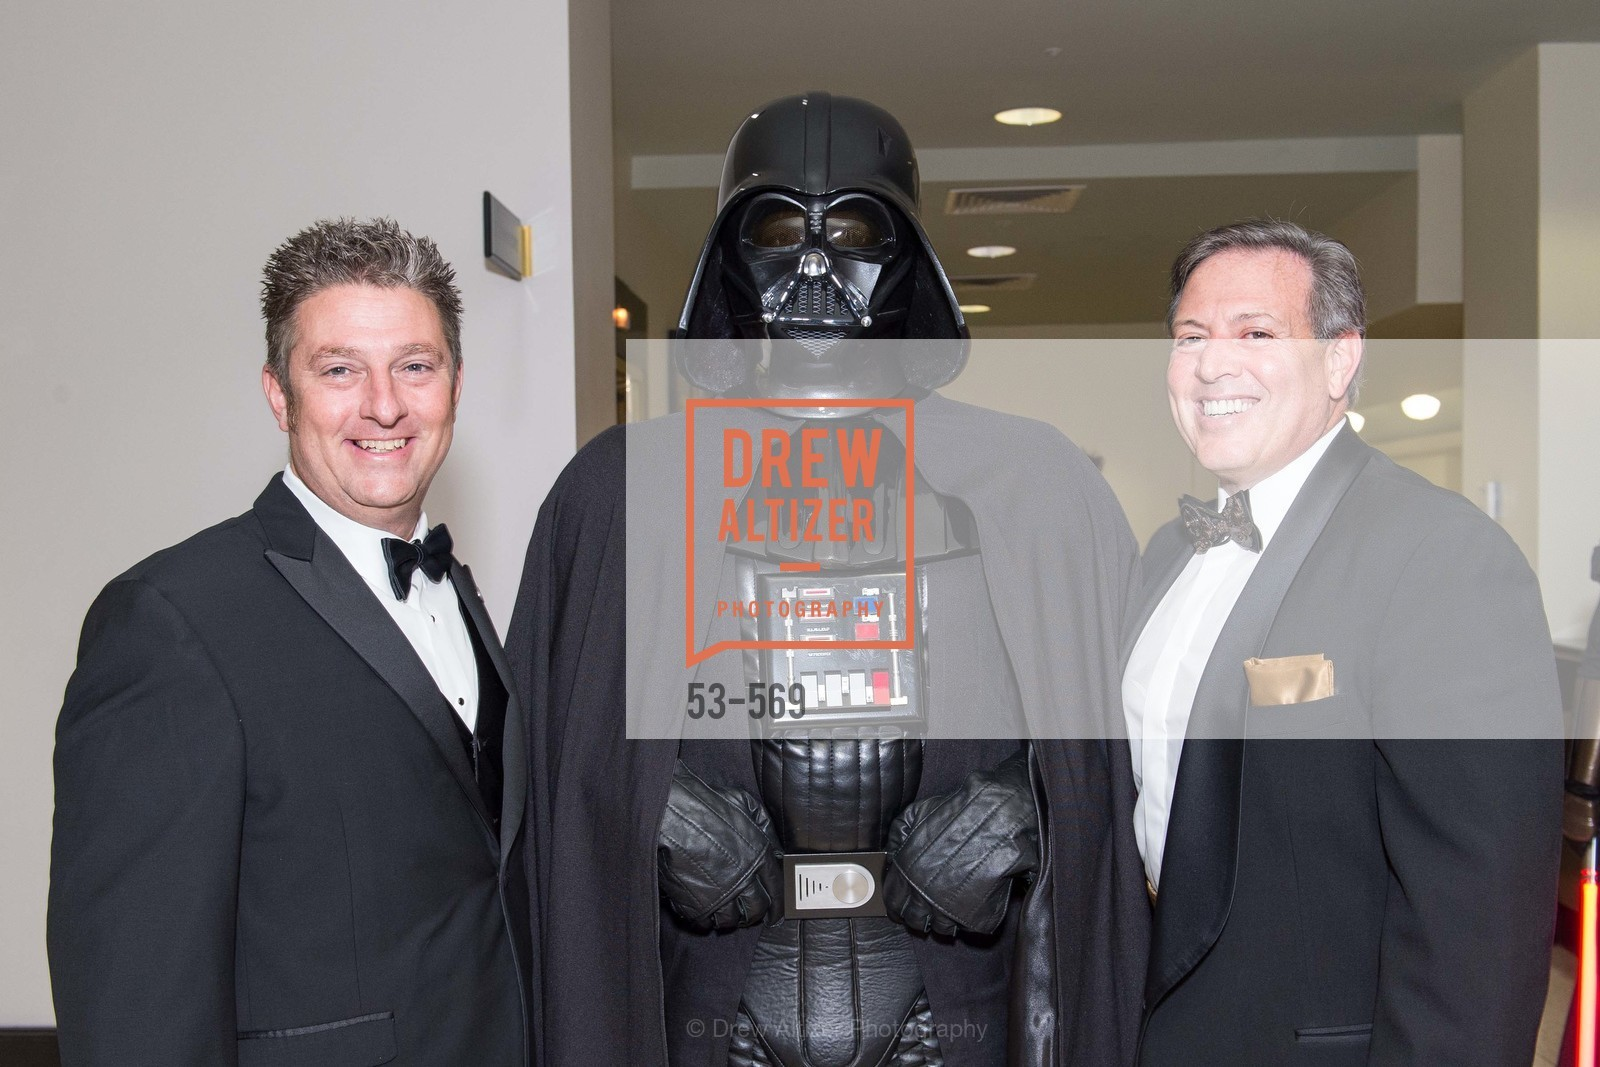 Shawn Stark, John Russo, CHABOT Science Center STARLIGHT GALA, US, September 20th, 2014,Drew Altizer, Drew Altizer Photography, full-service agency, private events, San Francisco photographer, photographer california